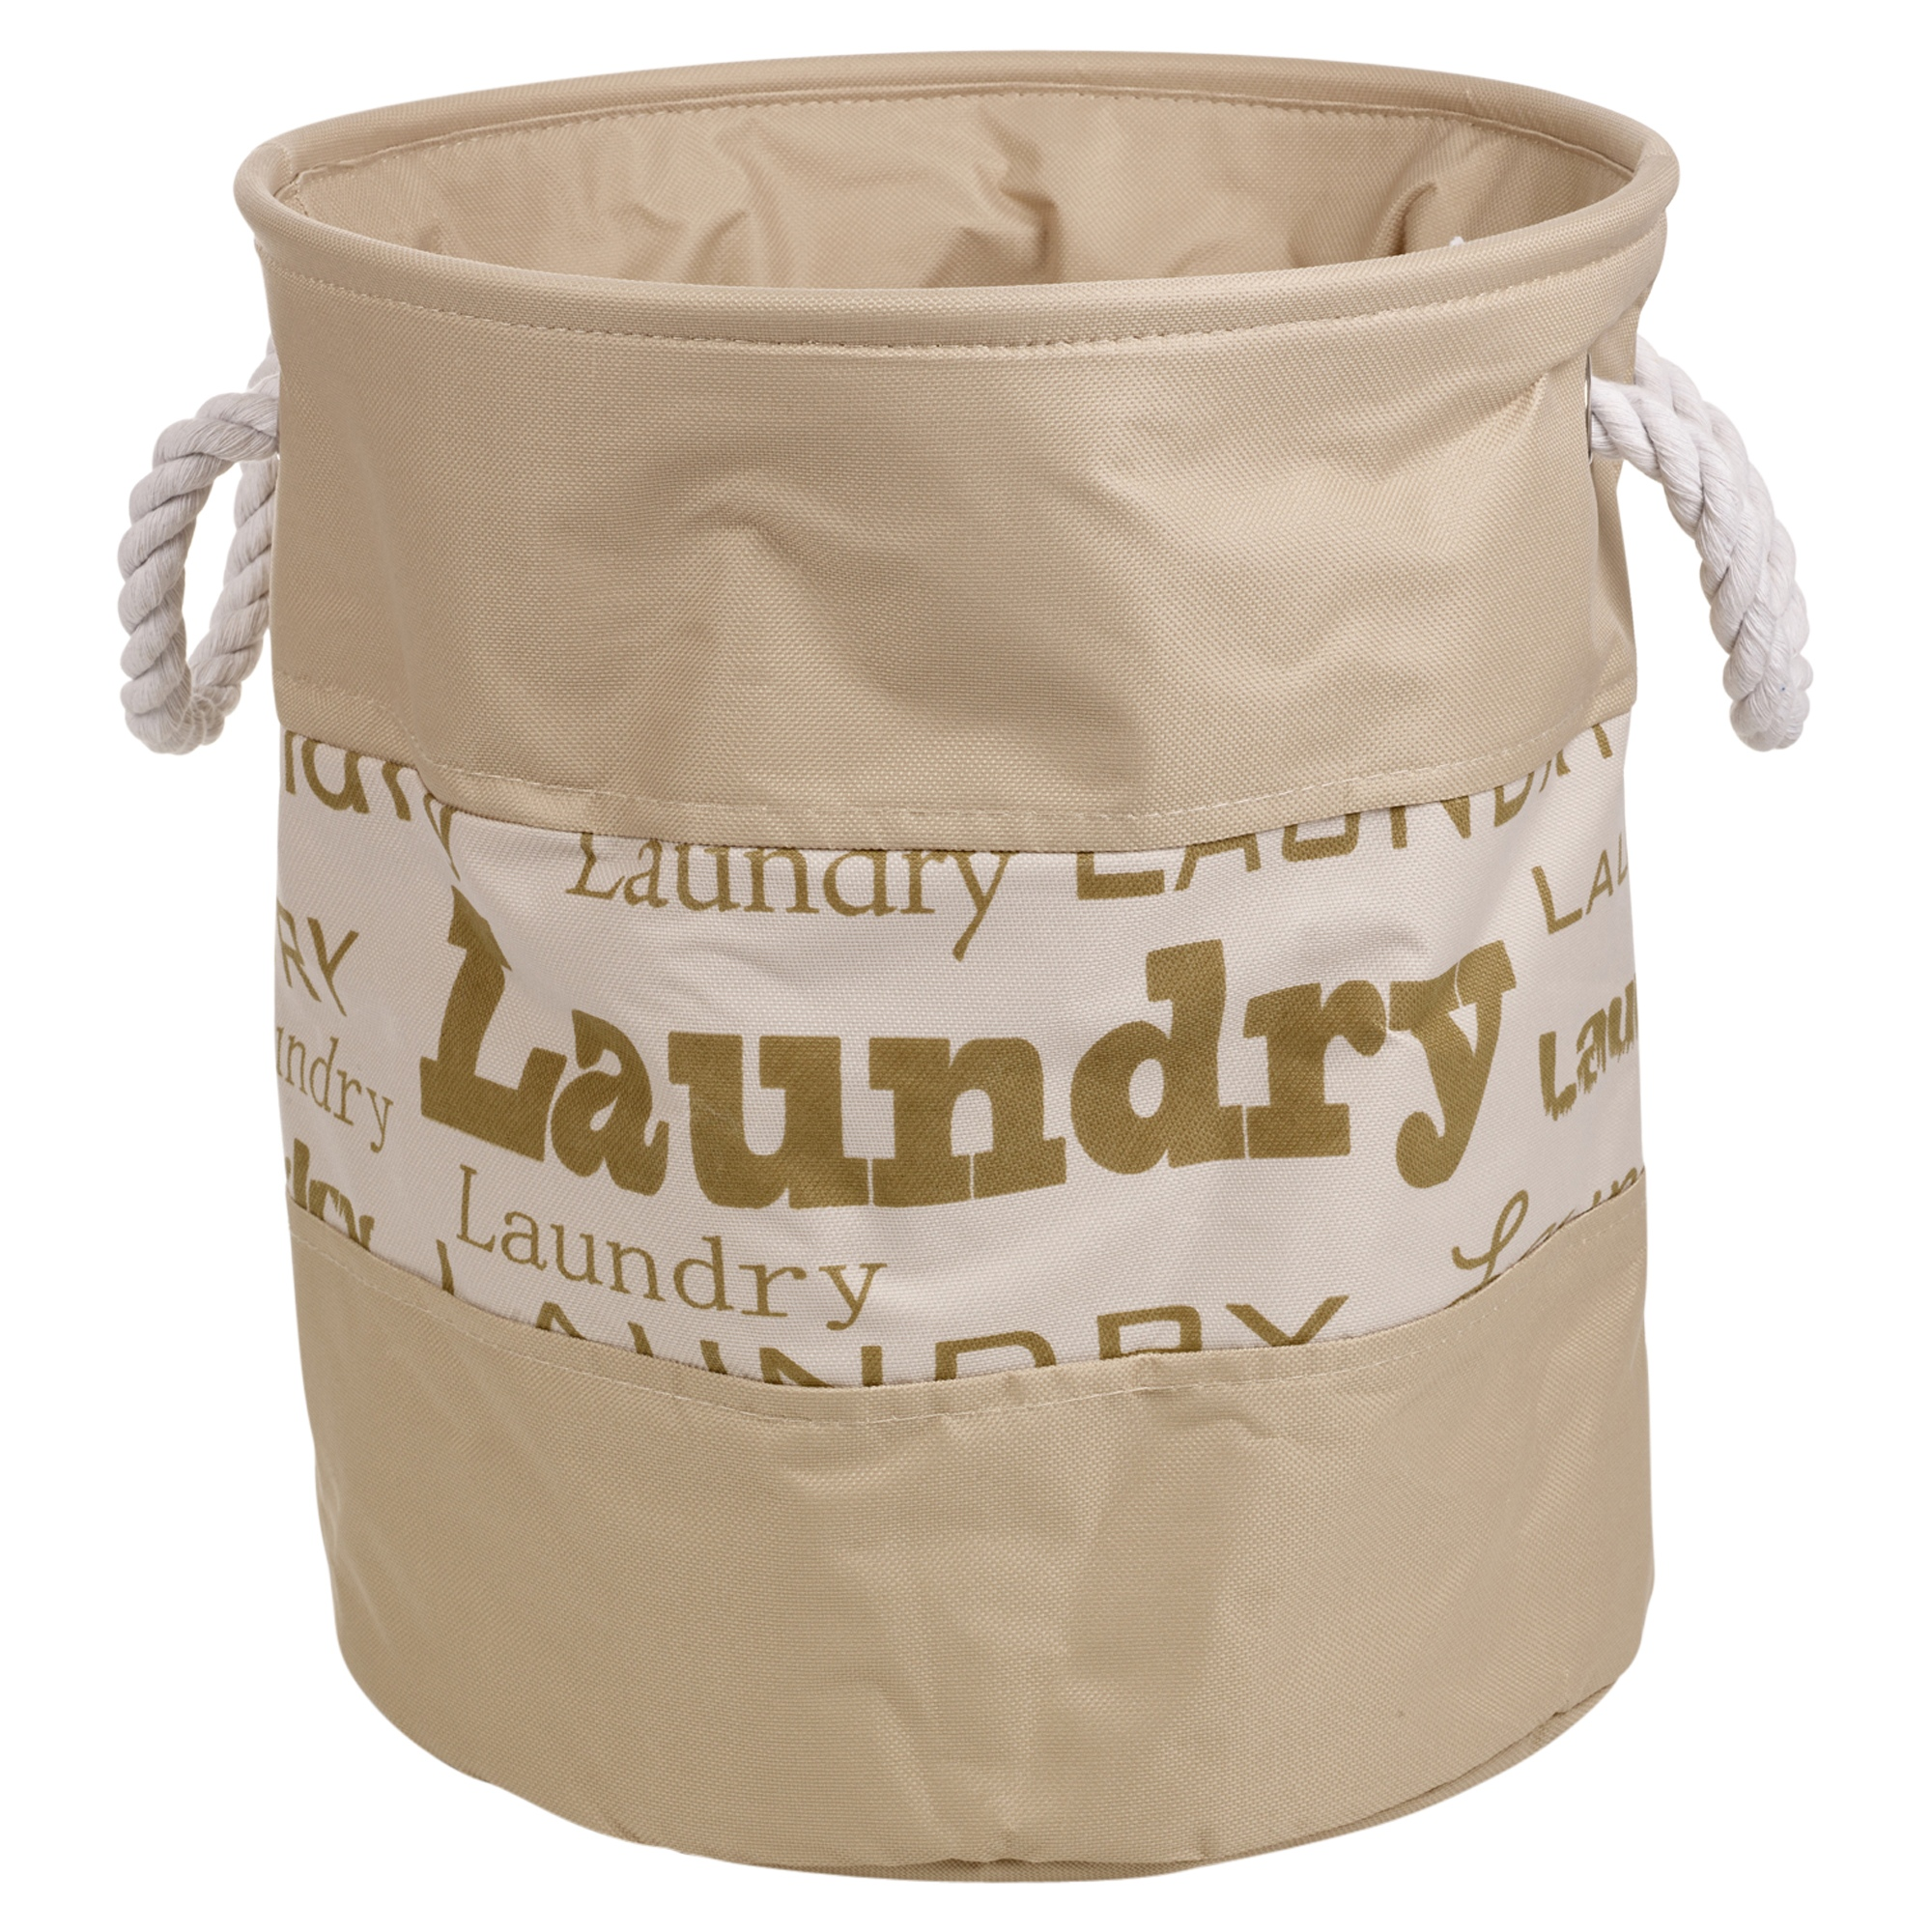 Welcome to Laundry Bags Online! We are an American-owned company producing a wide variety of laundry mesh bags. Each step of our manufacturing process, from knitting to cutting to sewing, is performed in our factory in Brooklyn, New York.